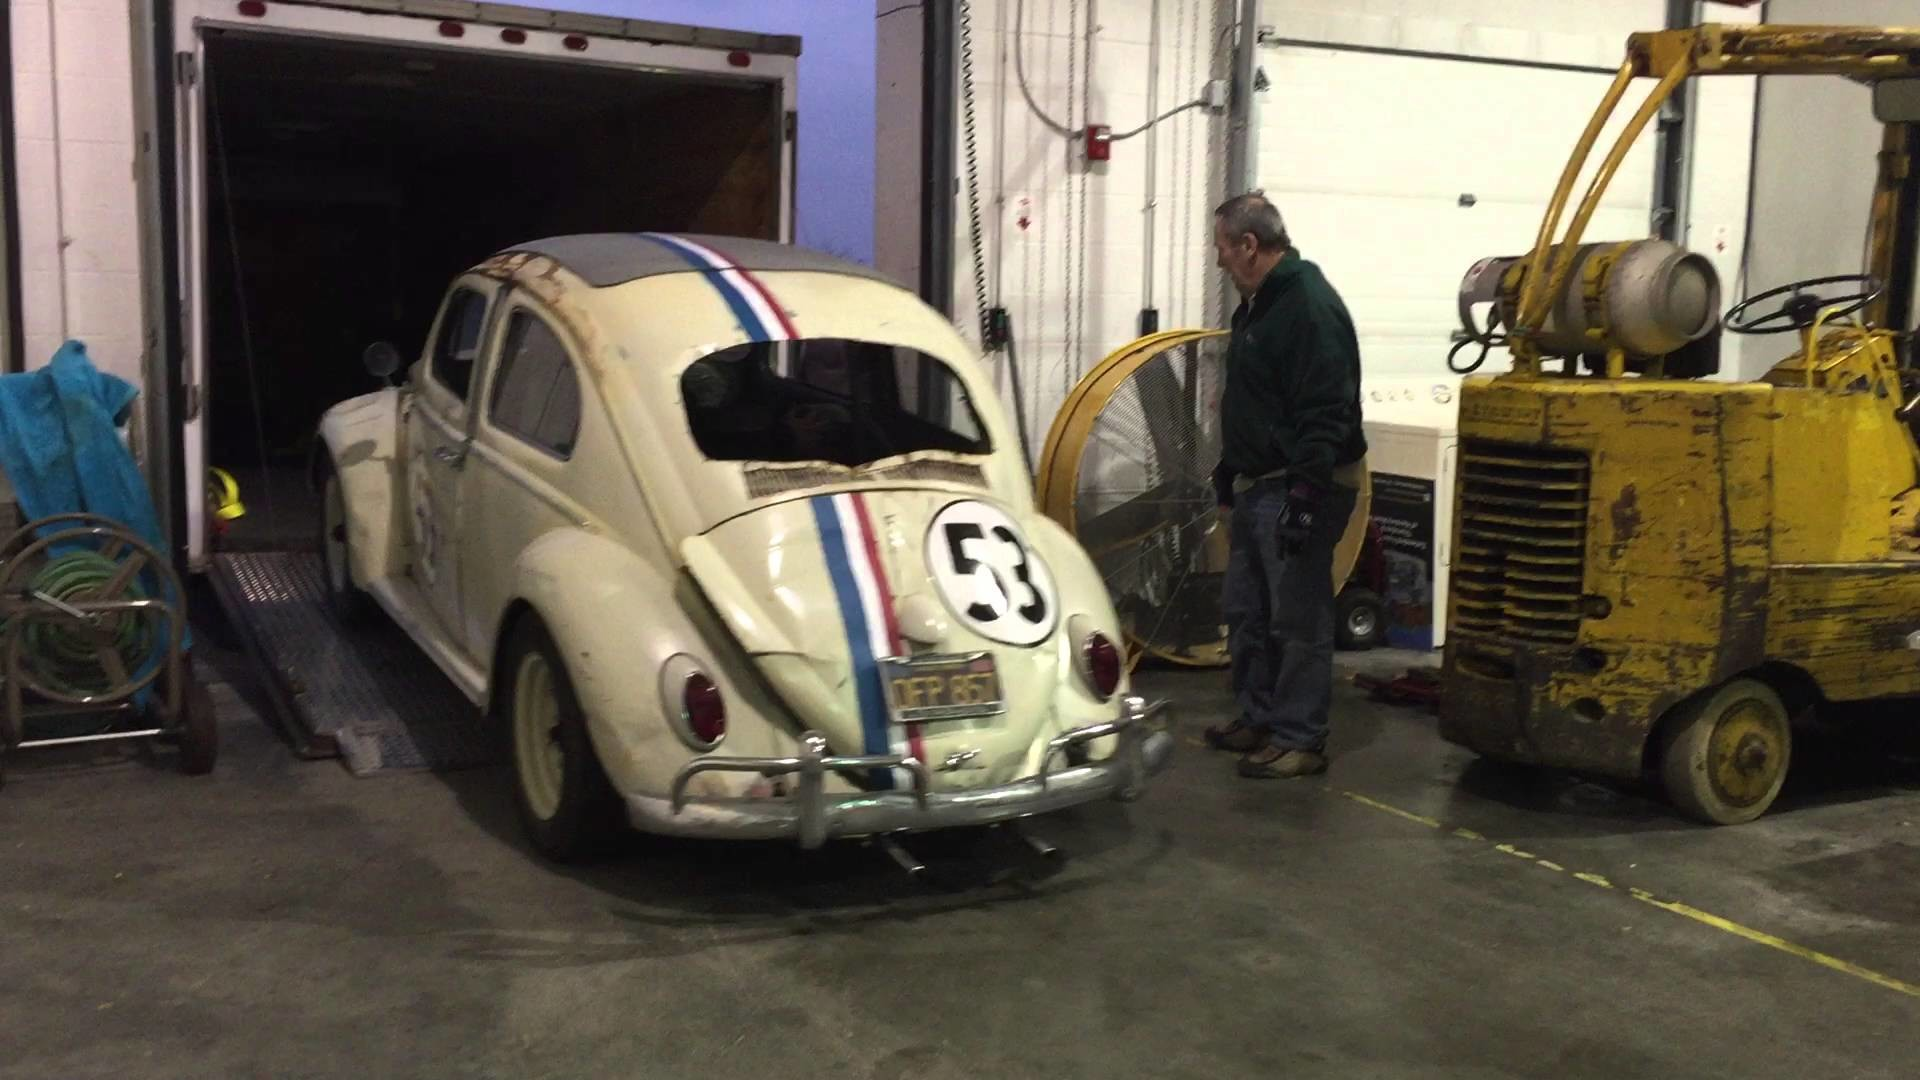 Res: 1920x1080, Herbie the Love Bug - Stunt Car